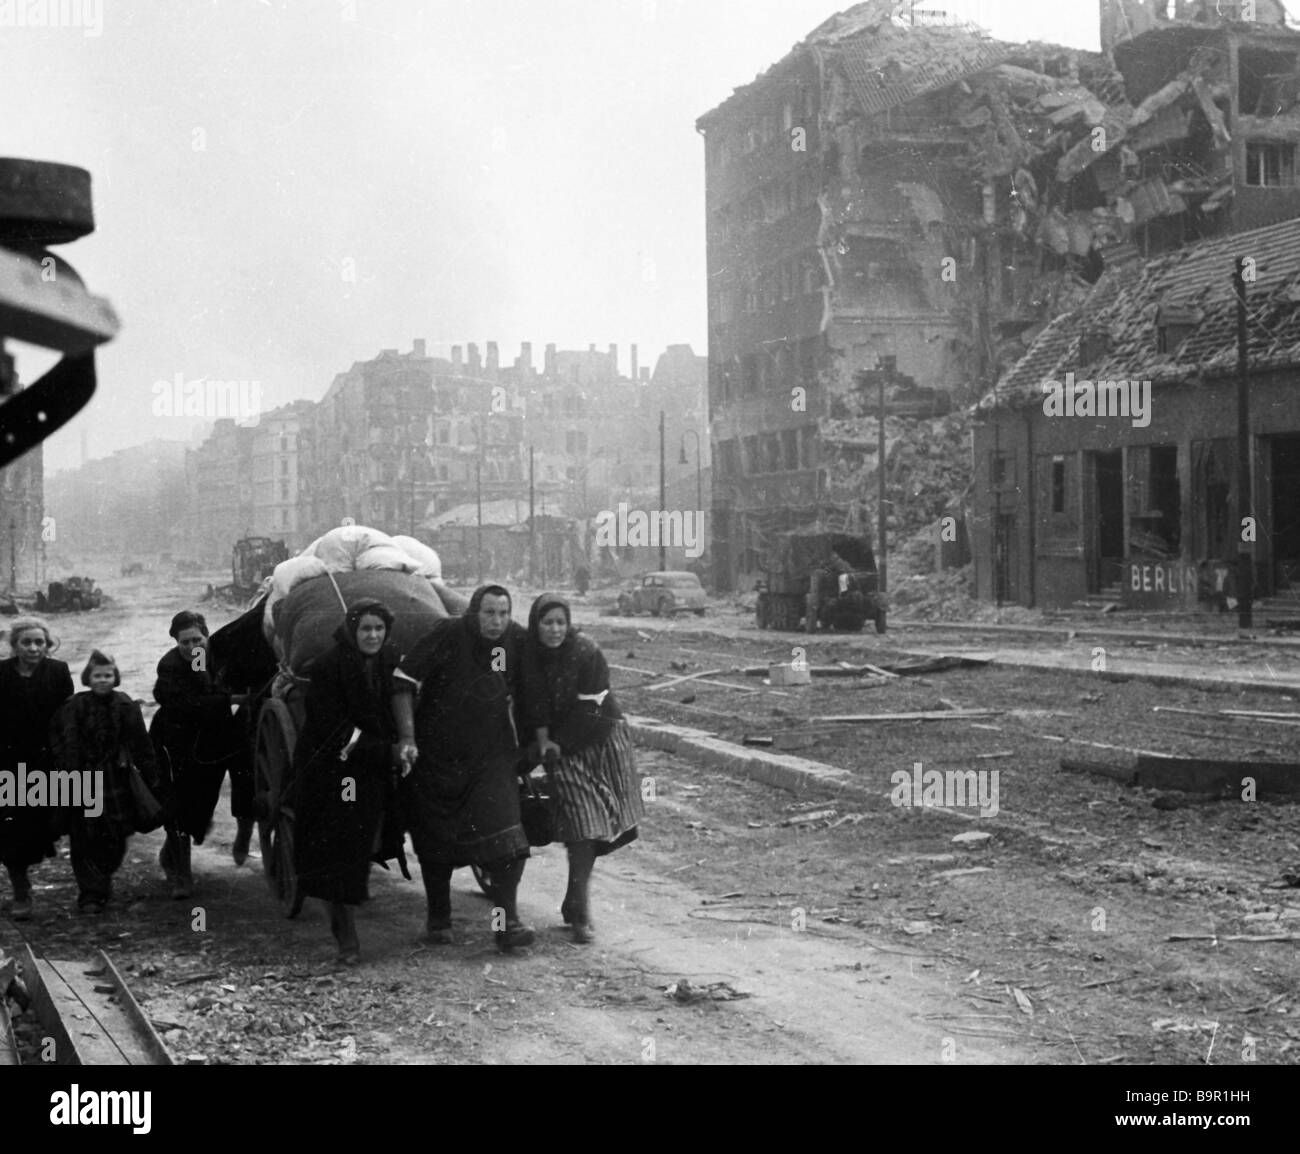 Peaceful residents in destroyed Berlin during the Great Patriotic War - Stock Image